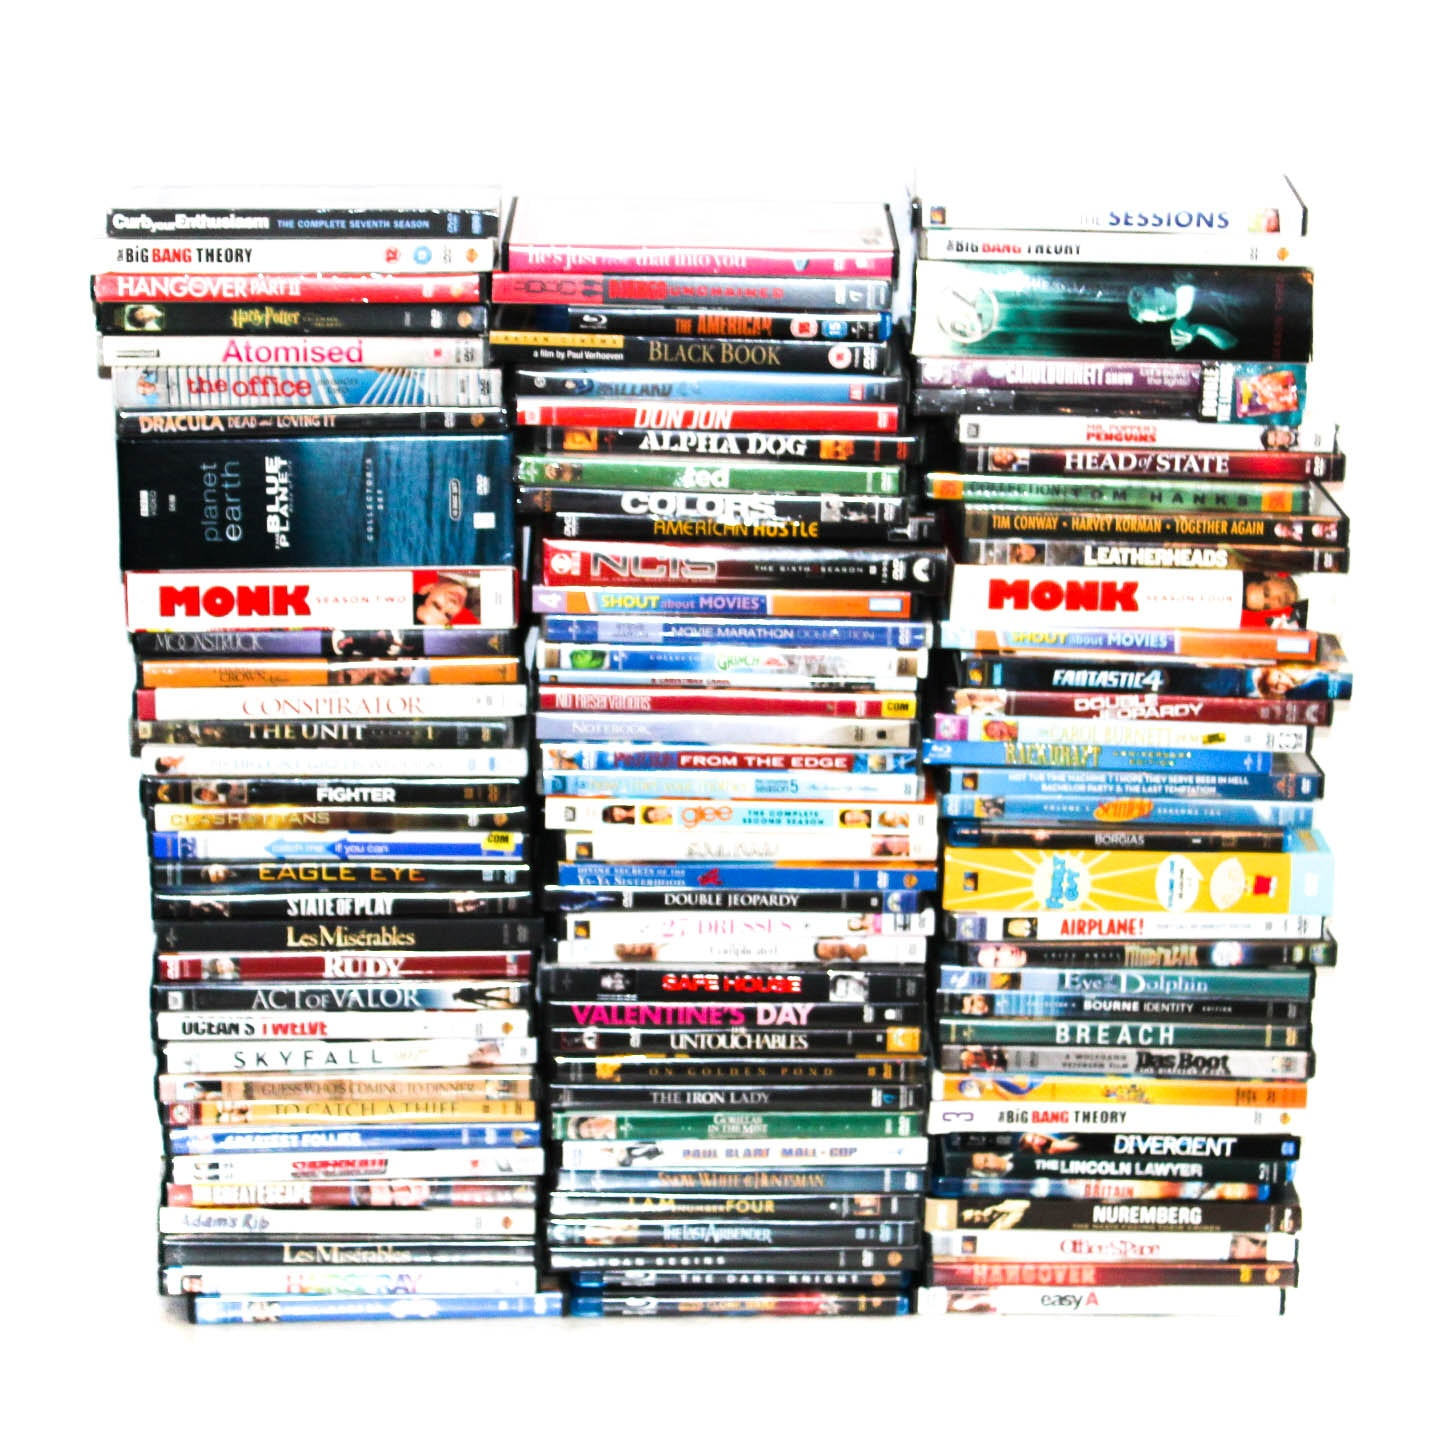 Films on DVD and Blu-Ray